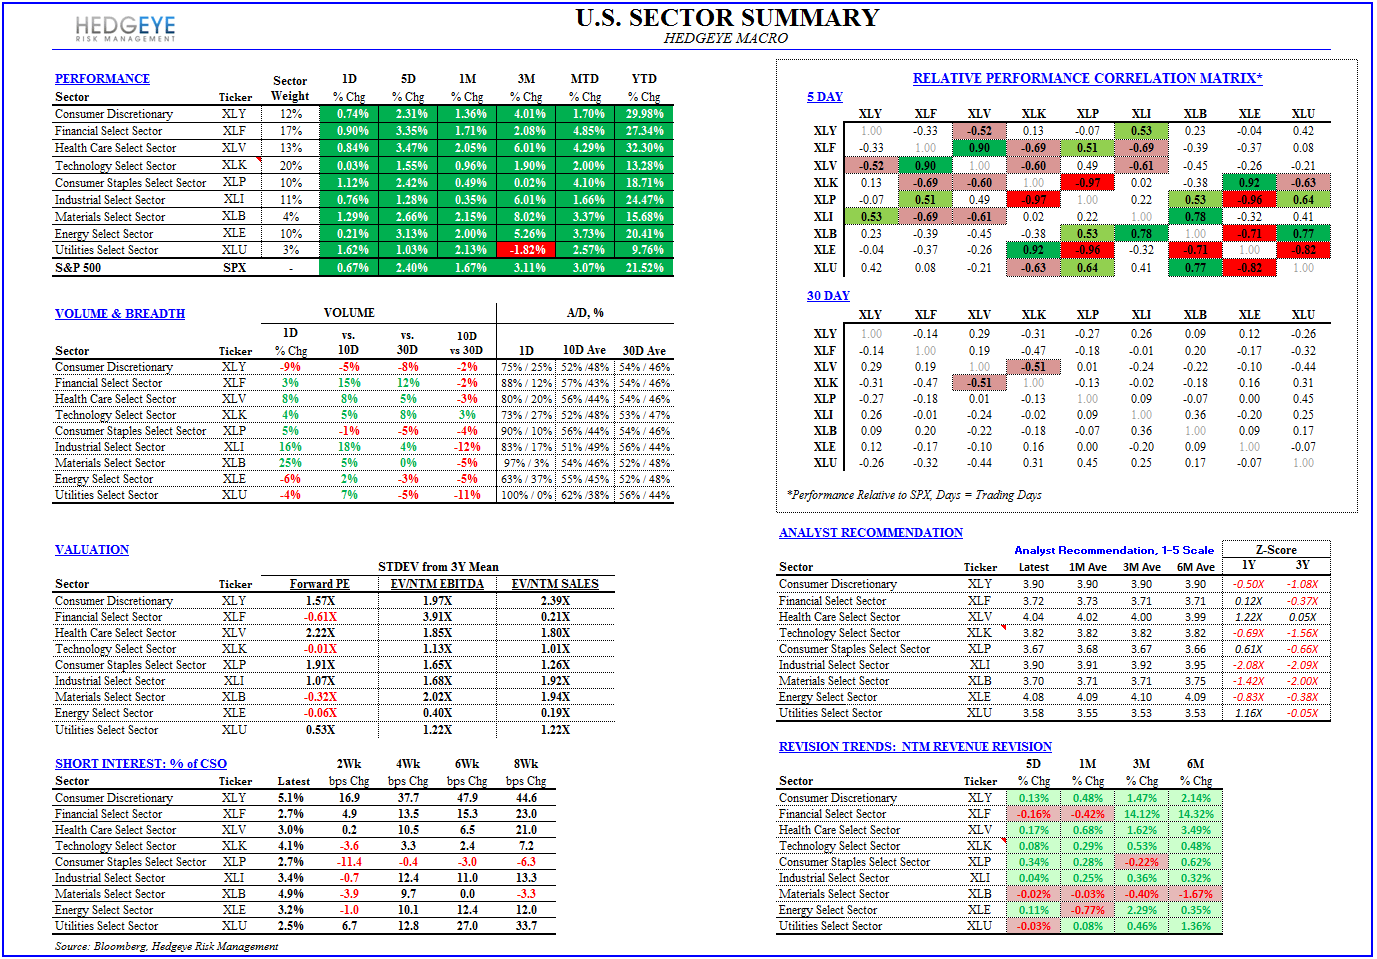 3Q13 Earnings Scorecard:  Early Trends - Sector Summary